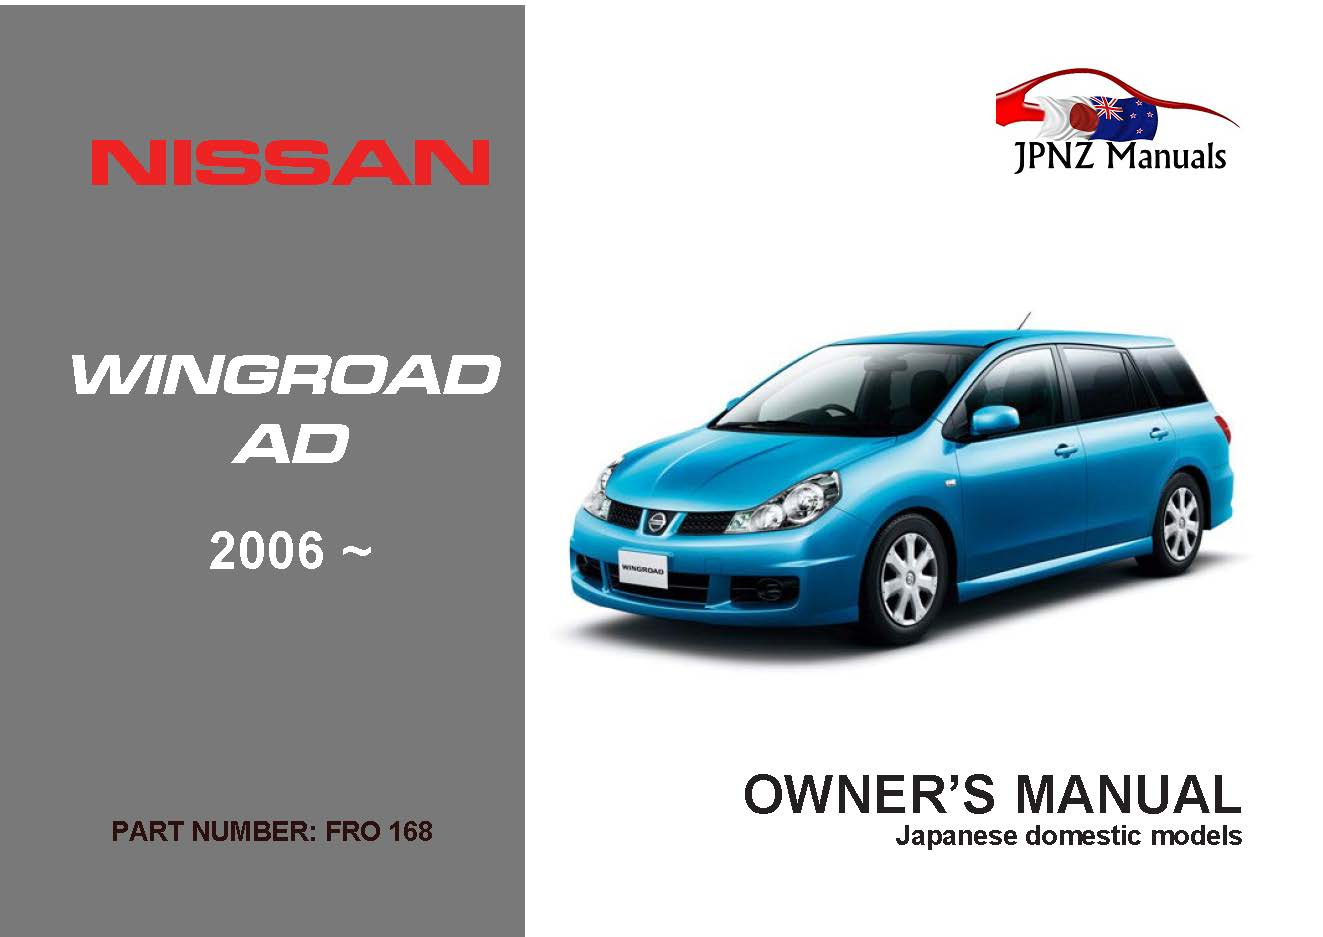 nissan wingroad owner manual best setting instruction guide u2022 rh ourk9 co 2012 Nissan Rogue Factory Service Manual 2012 Nissan Rogue Factory Service Manual